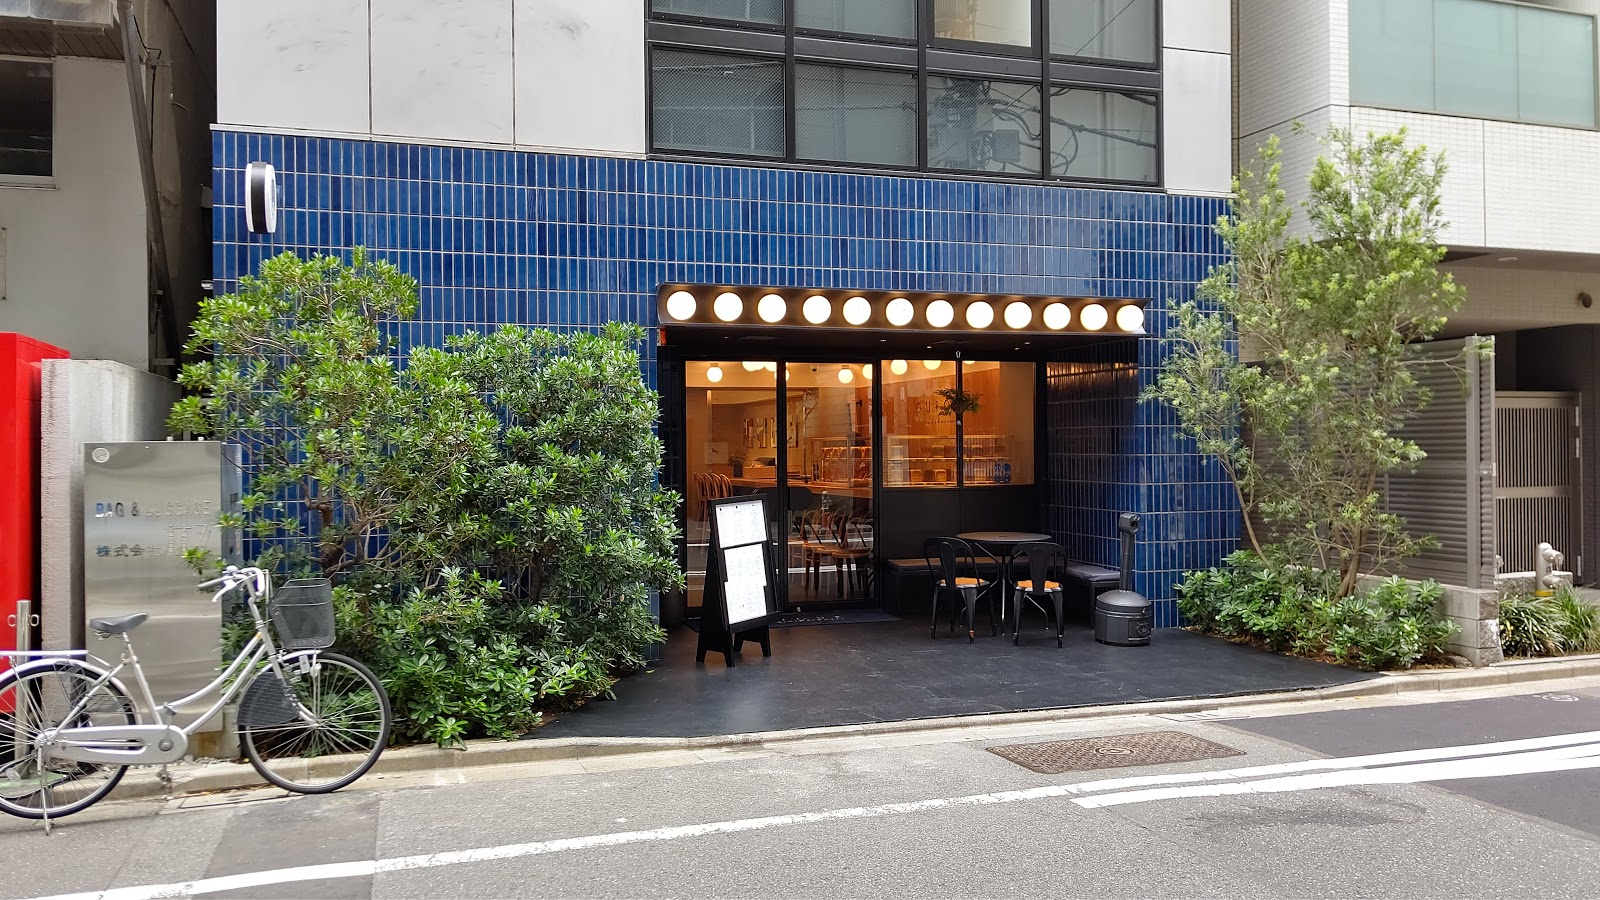 CAFE/MINIMAL HOTEL OUR OUR (アゥア)にて